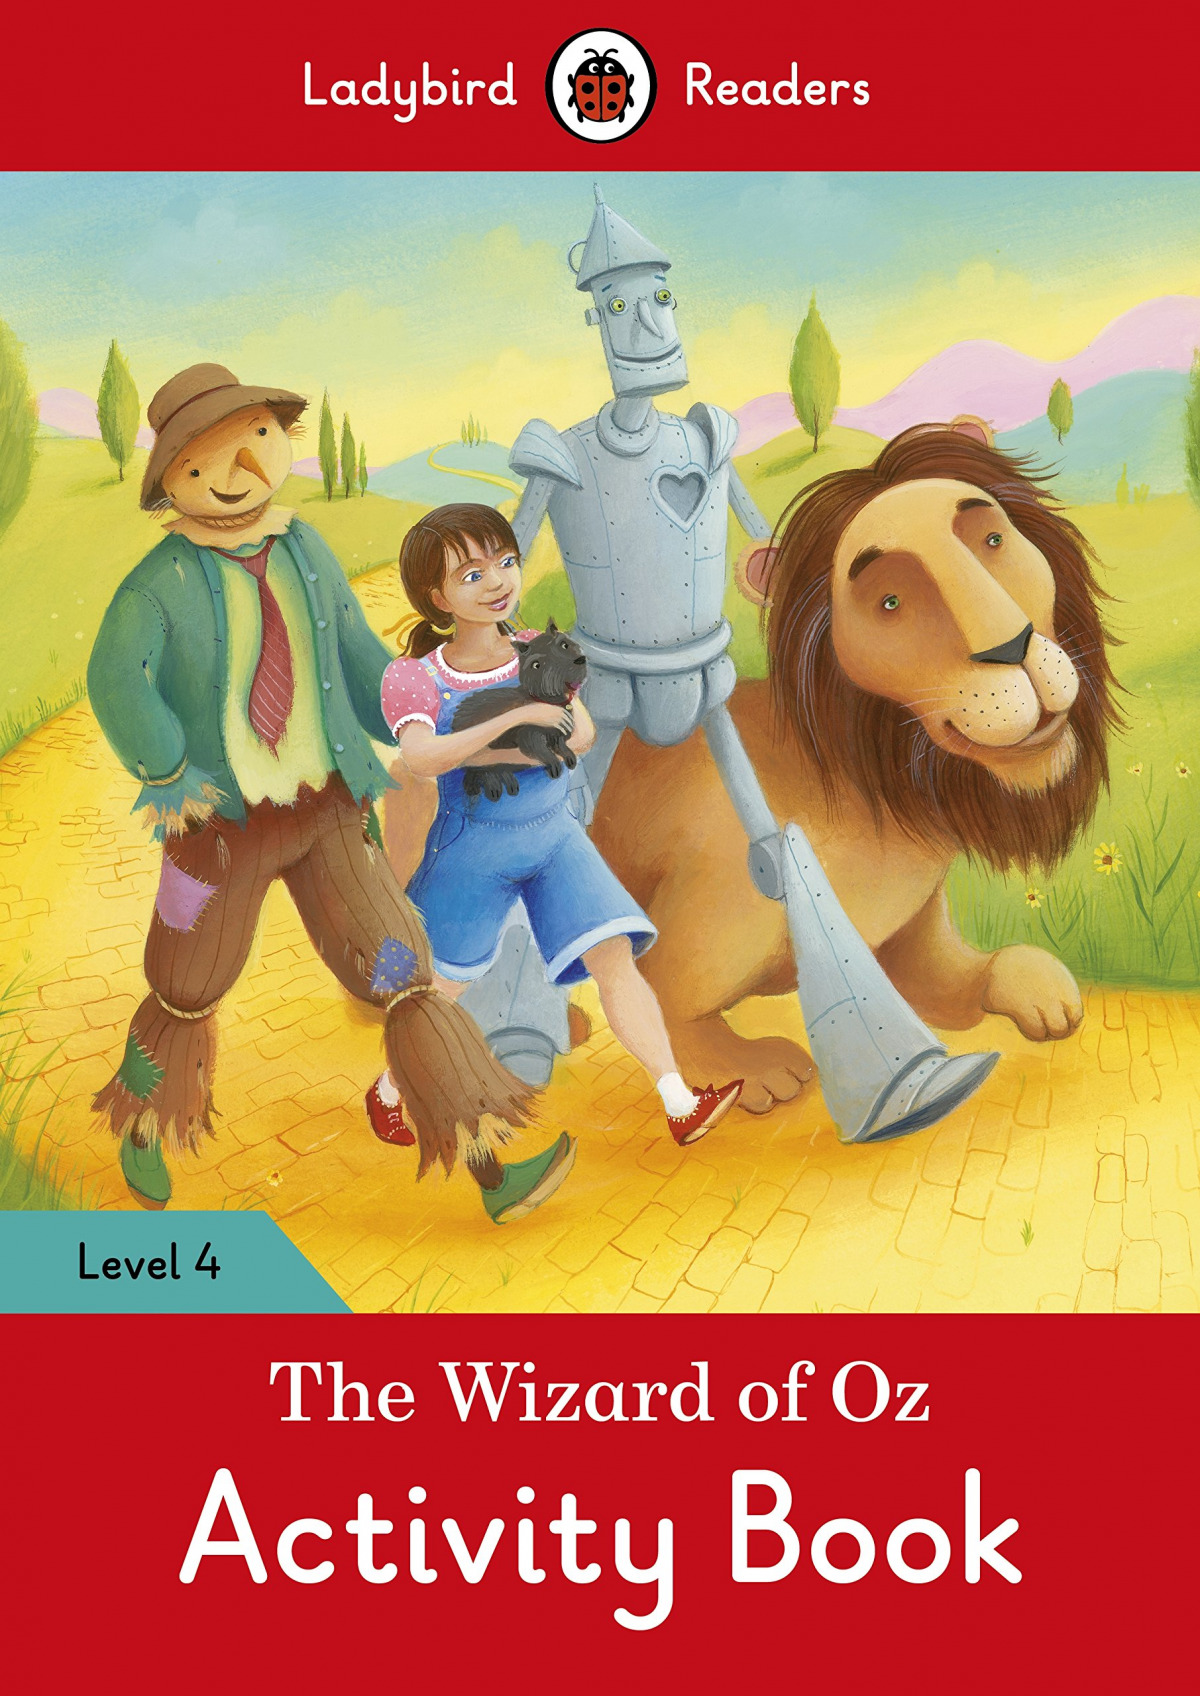 THE WIZARD OF OZ. ACTIVITY BOOK